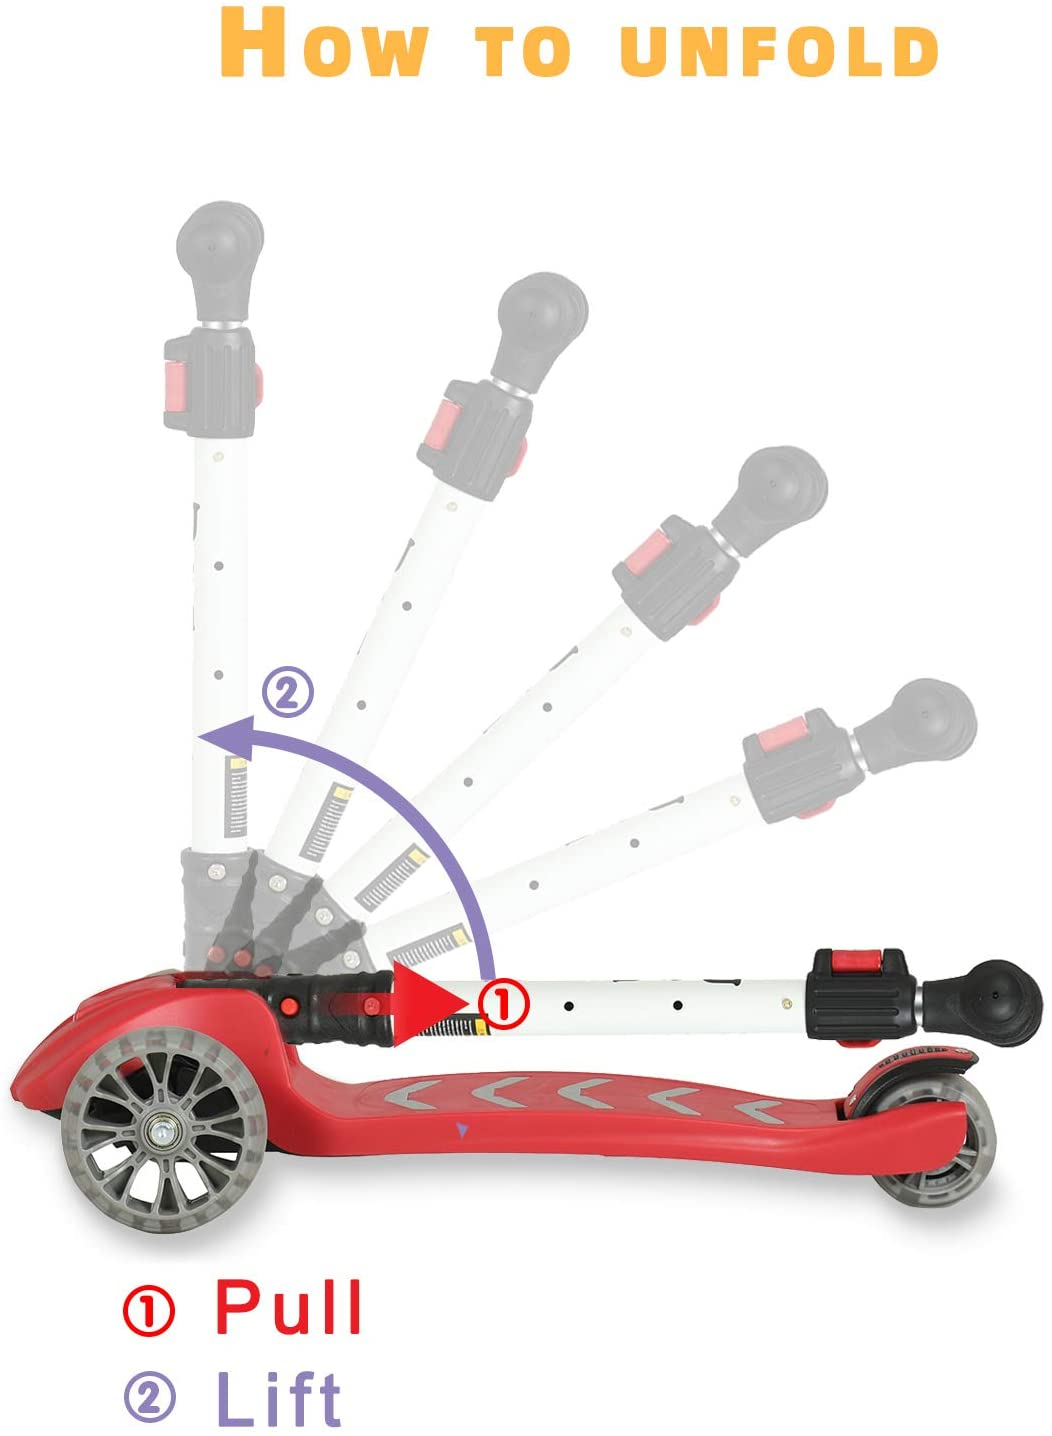 Uenjoy Kick Scooter Kids 3 Wheel Scooter for Boys Girls, Adjustable Height, PU Light Up LED Wheels